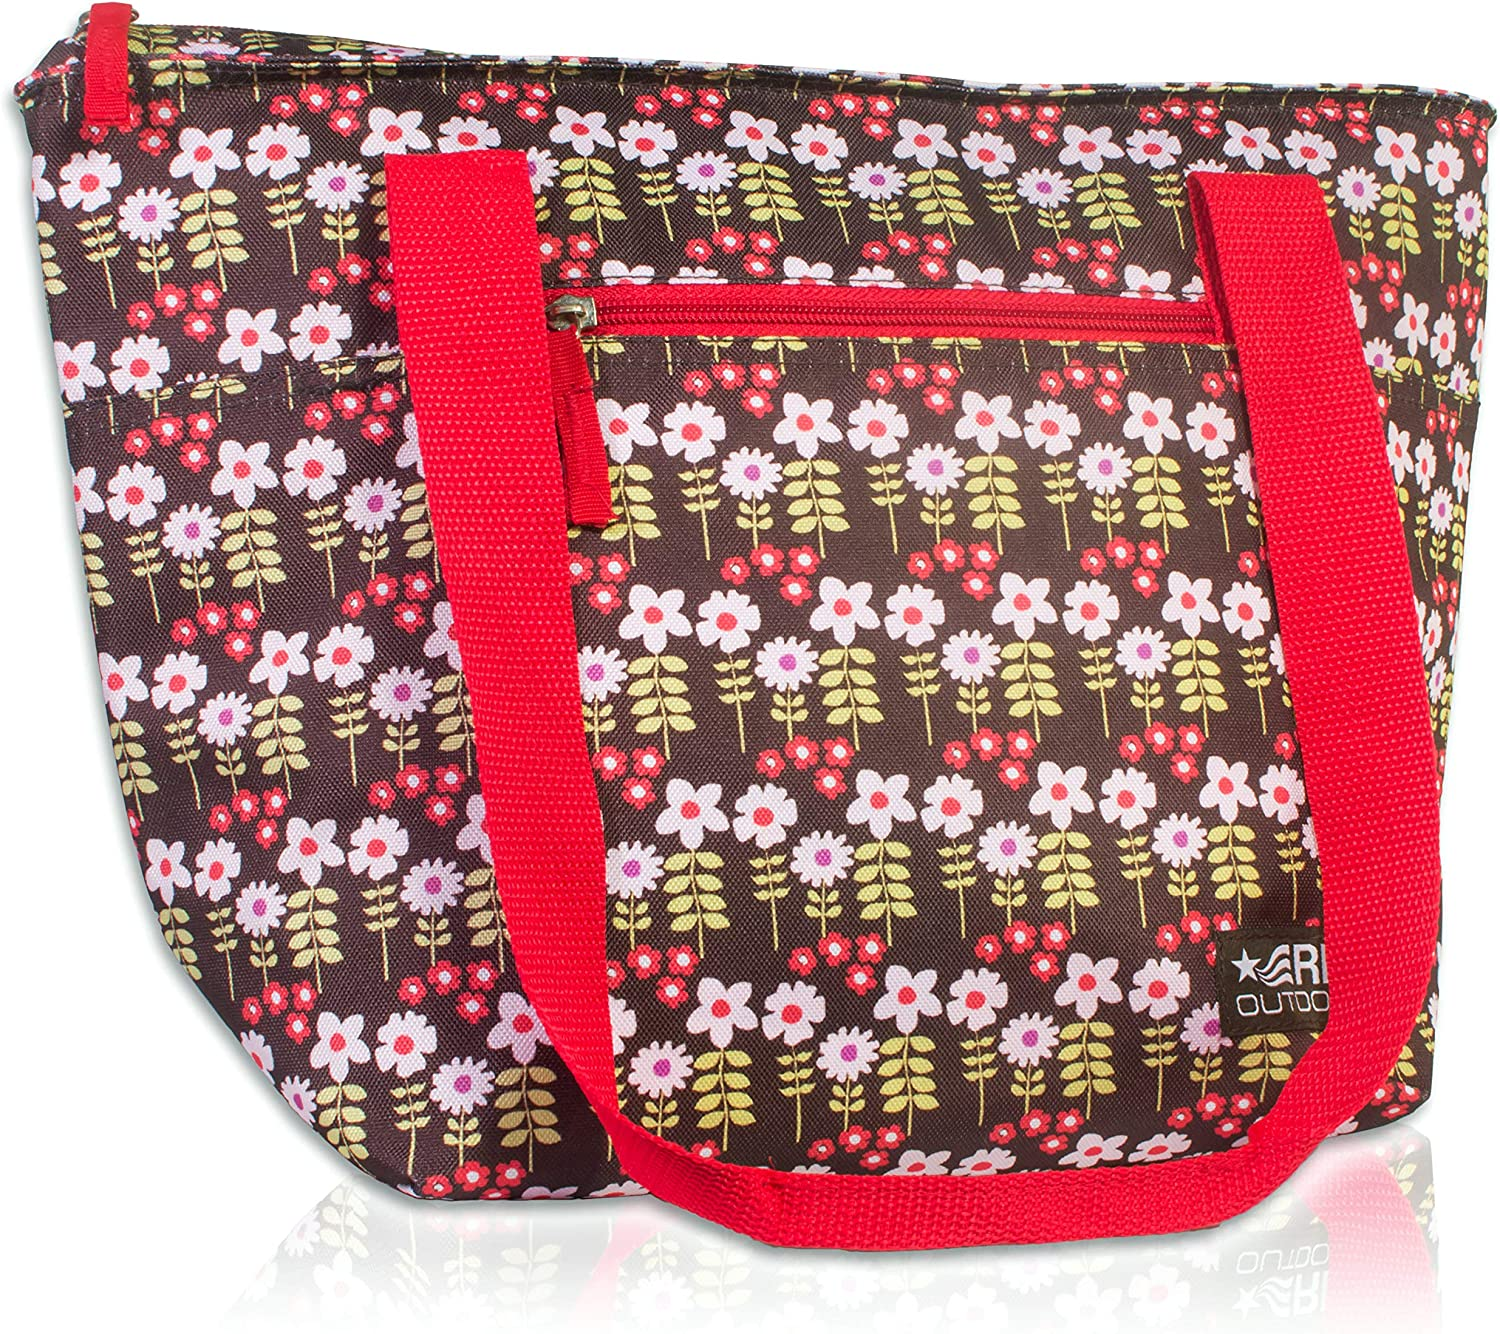 RMS Cooler Tote and Lunch Bag - Insulated Soft Cooler Bag for Everyday Activities - Ideal for Outdoors, Camping or Games - Stylish Floral Design for Women (Large, White Flower)